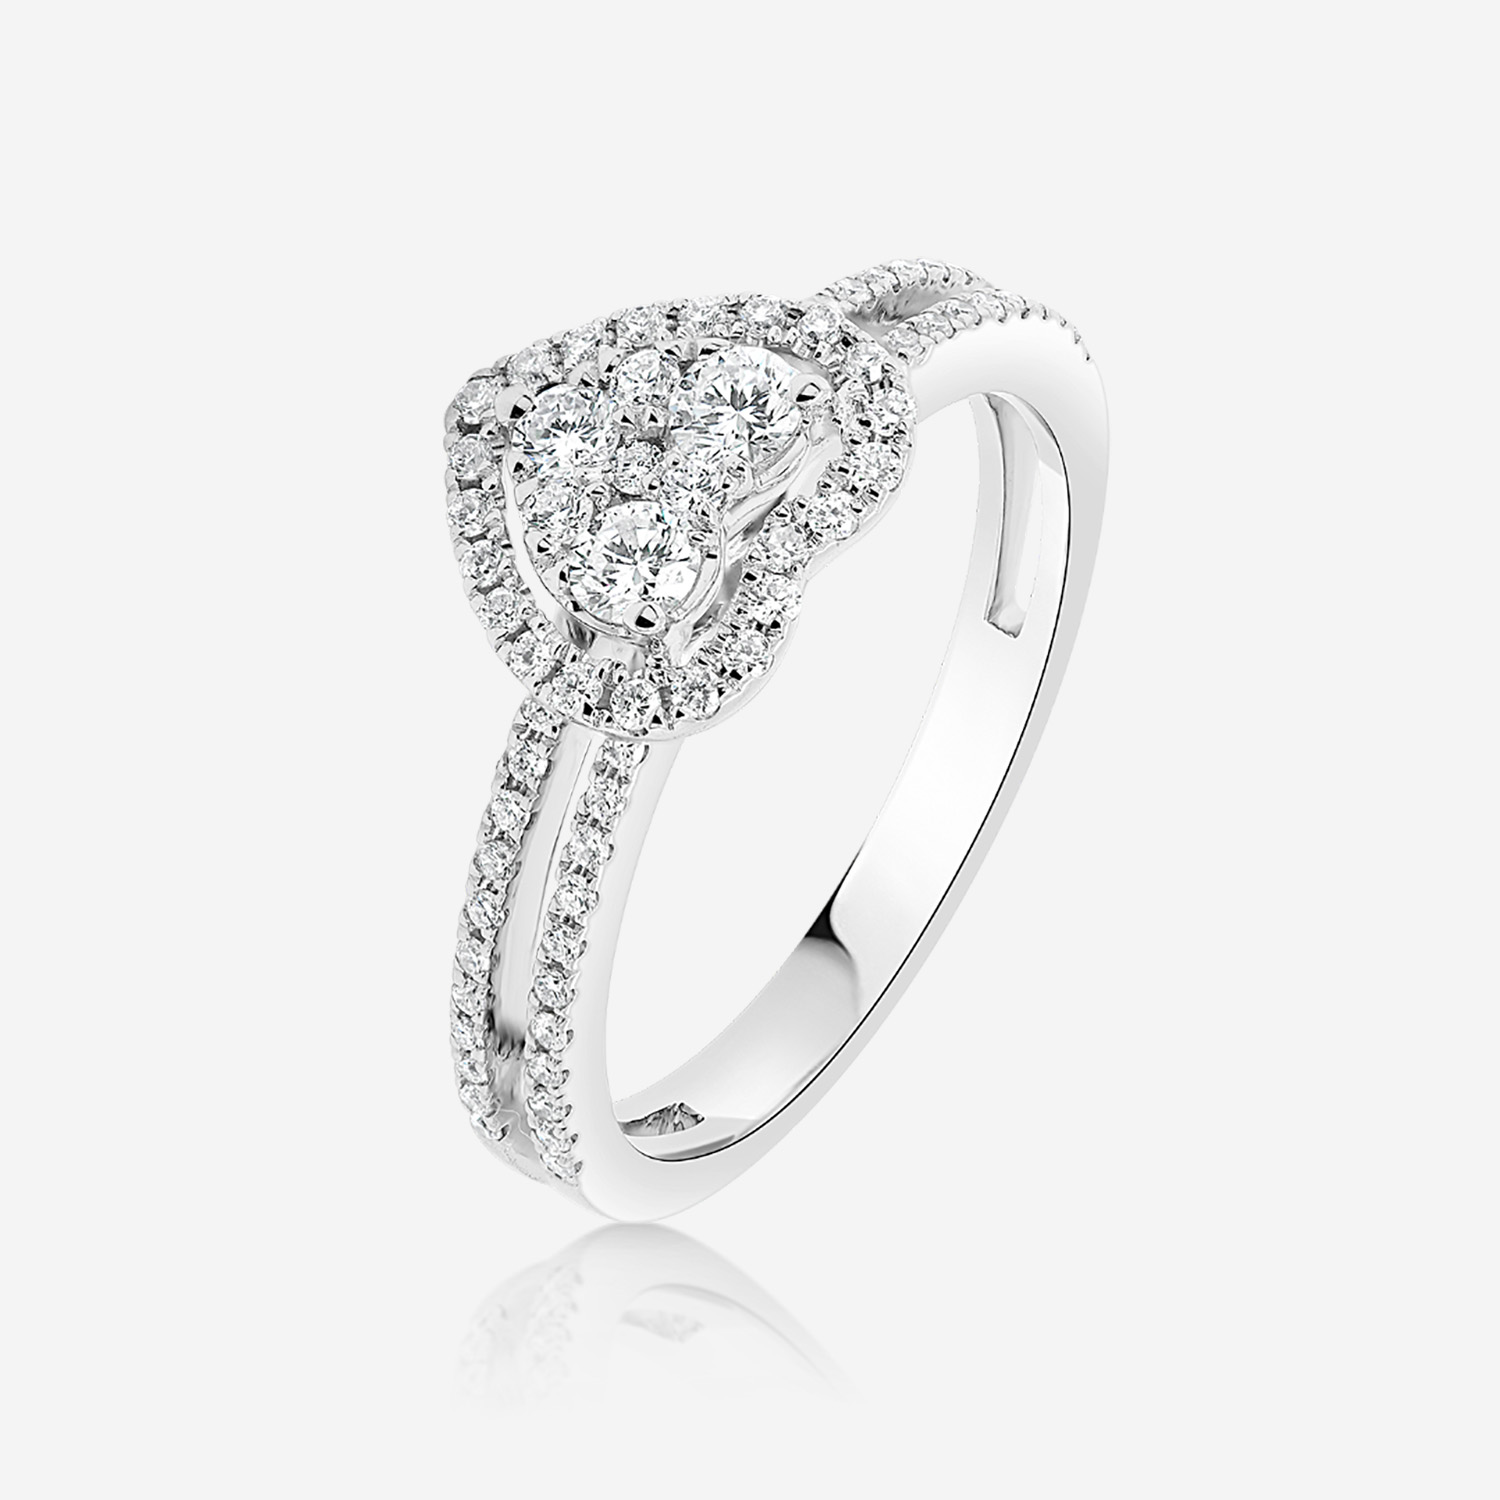 Engagement rings Gold ring with diamonds White Diamonds